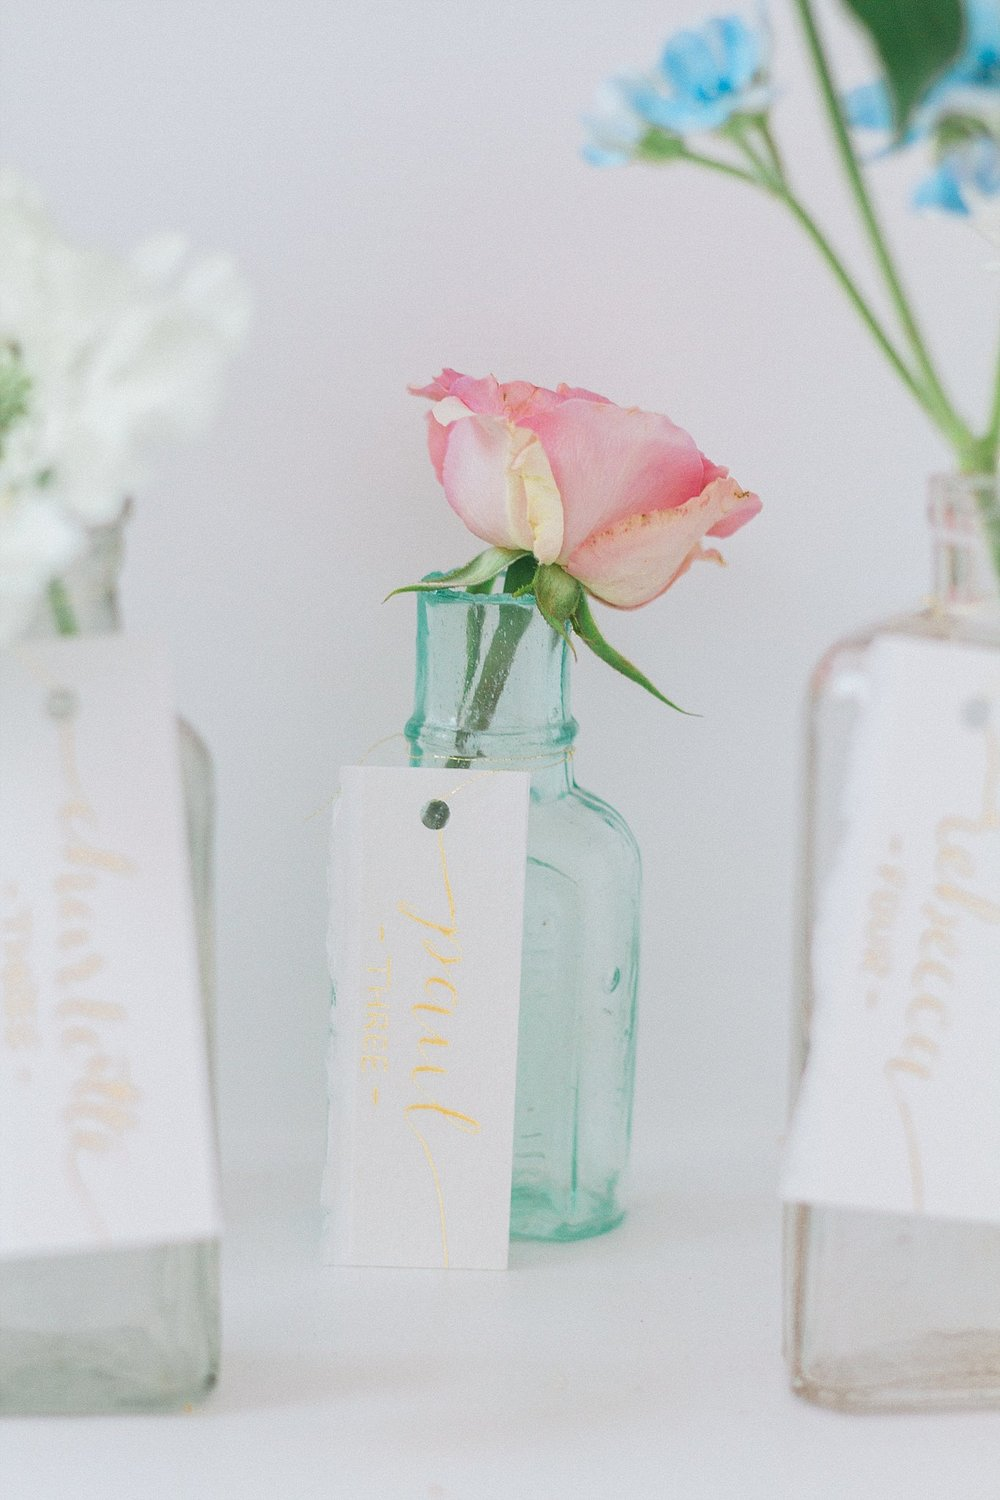 Vintage Amy Wedding Styling-Soft and Dreamy Wedding Styling-Vintage Medicine Bottles Table Plan